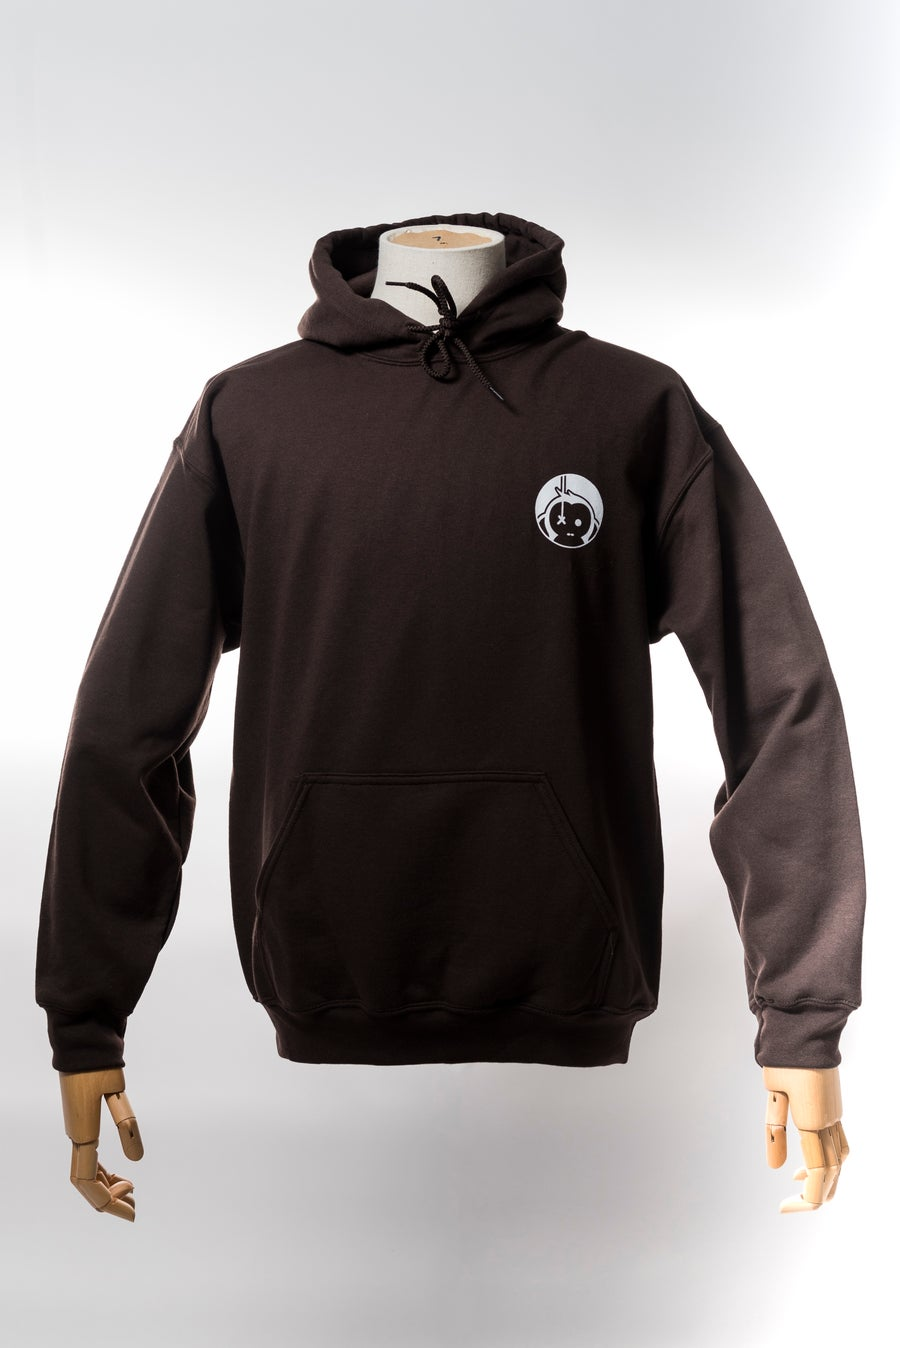 Image of Monkey Climber Pro Public Hoodie I Chocolate